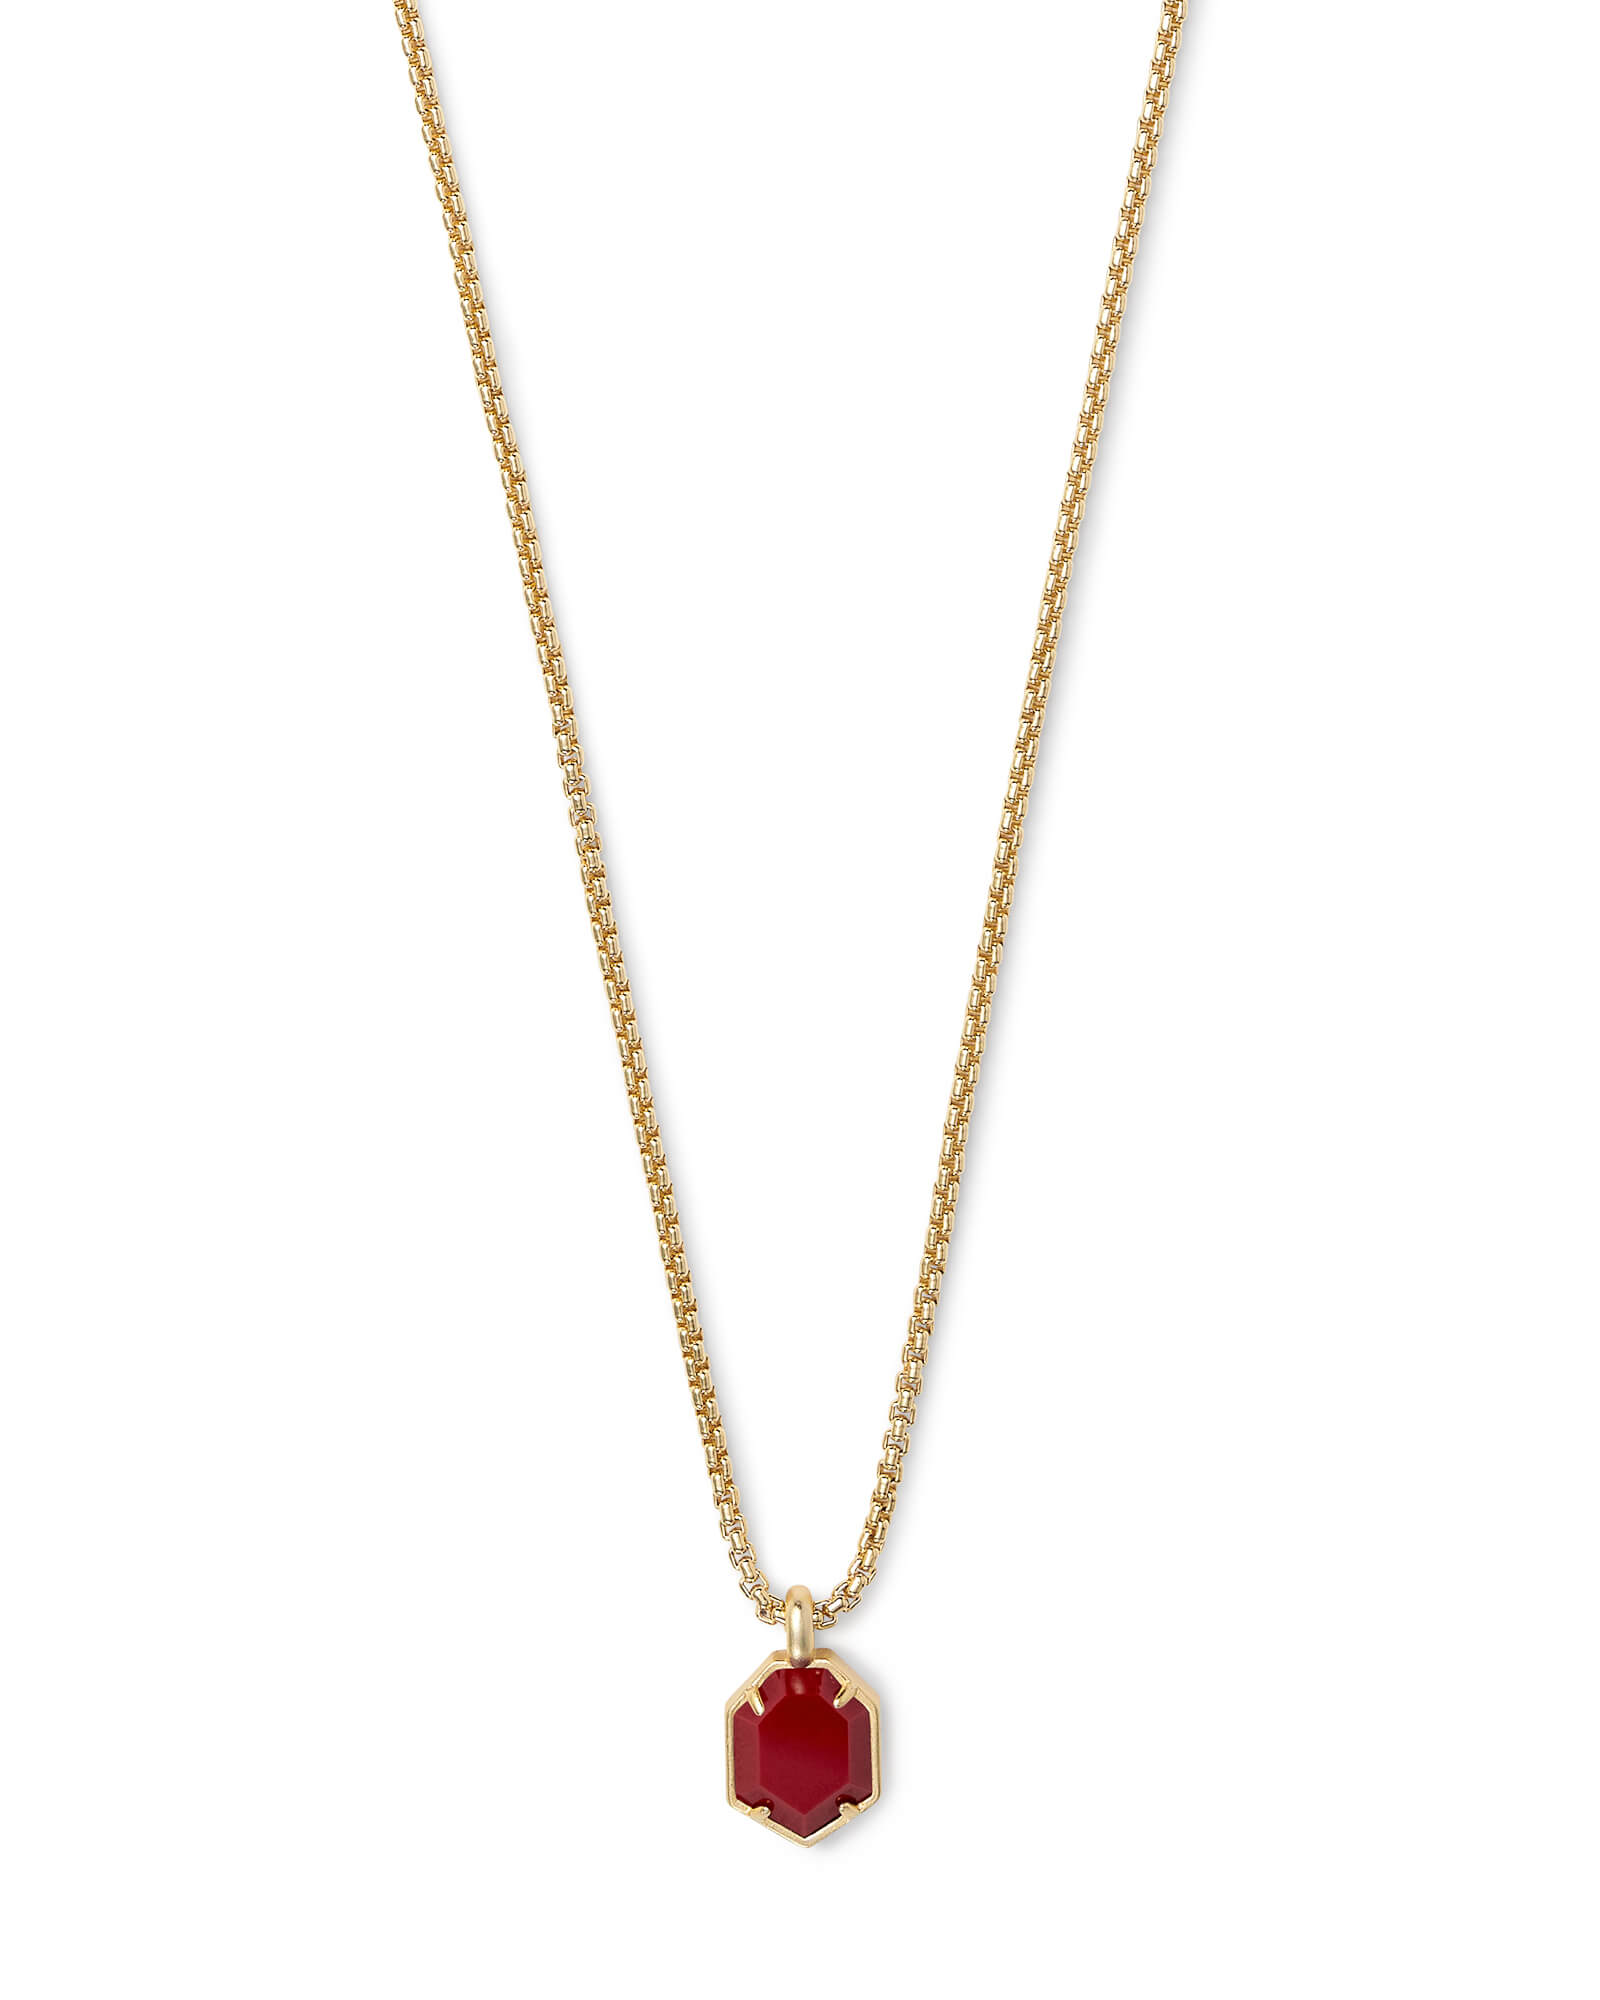 Teo Gold Pendant Necklace in Dark Red